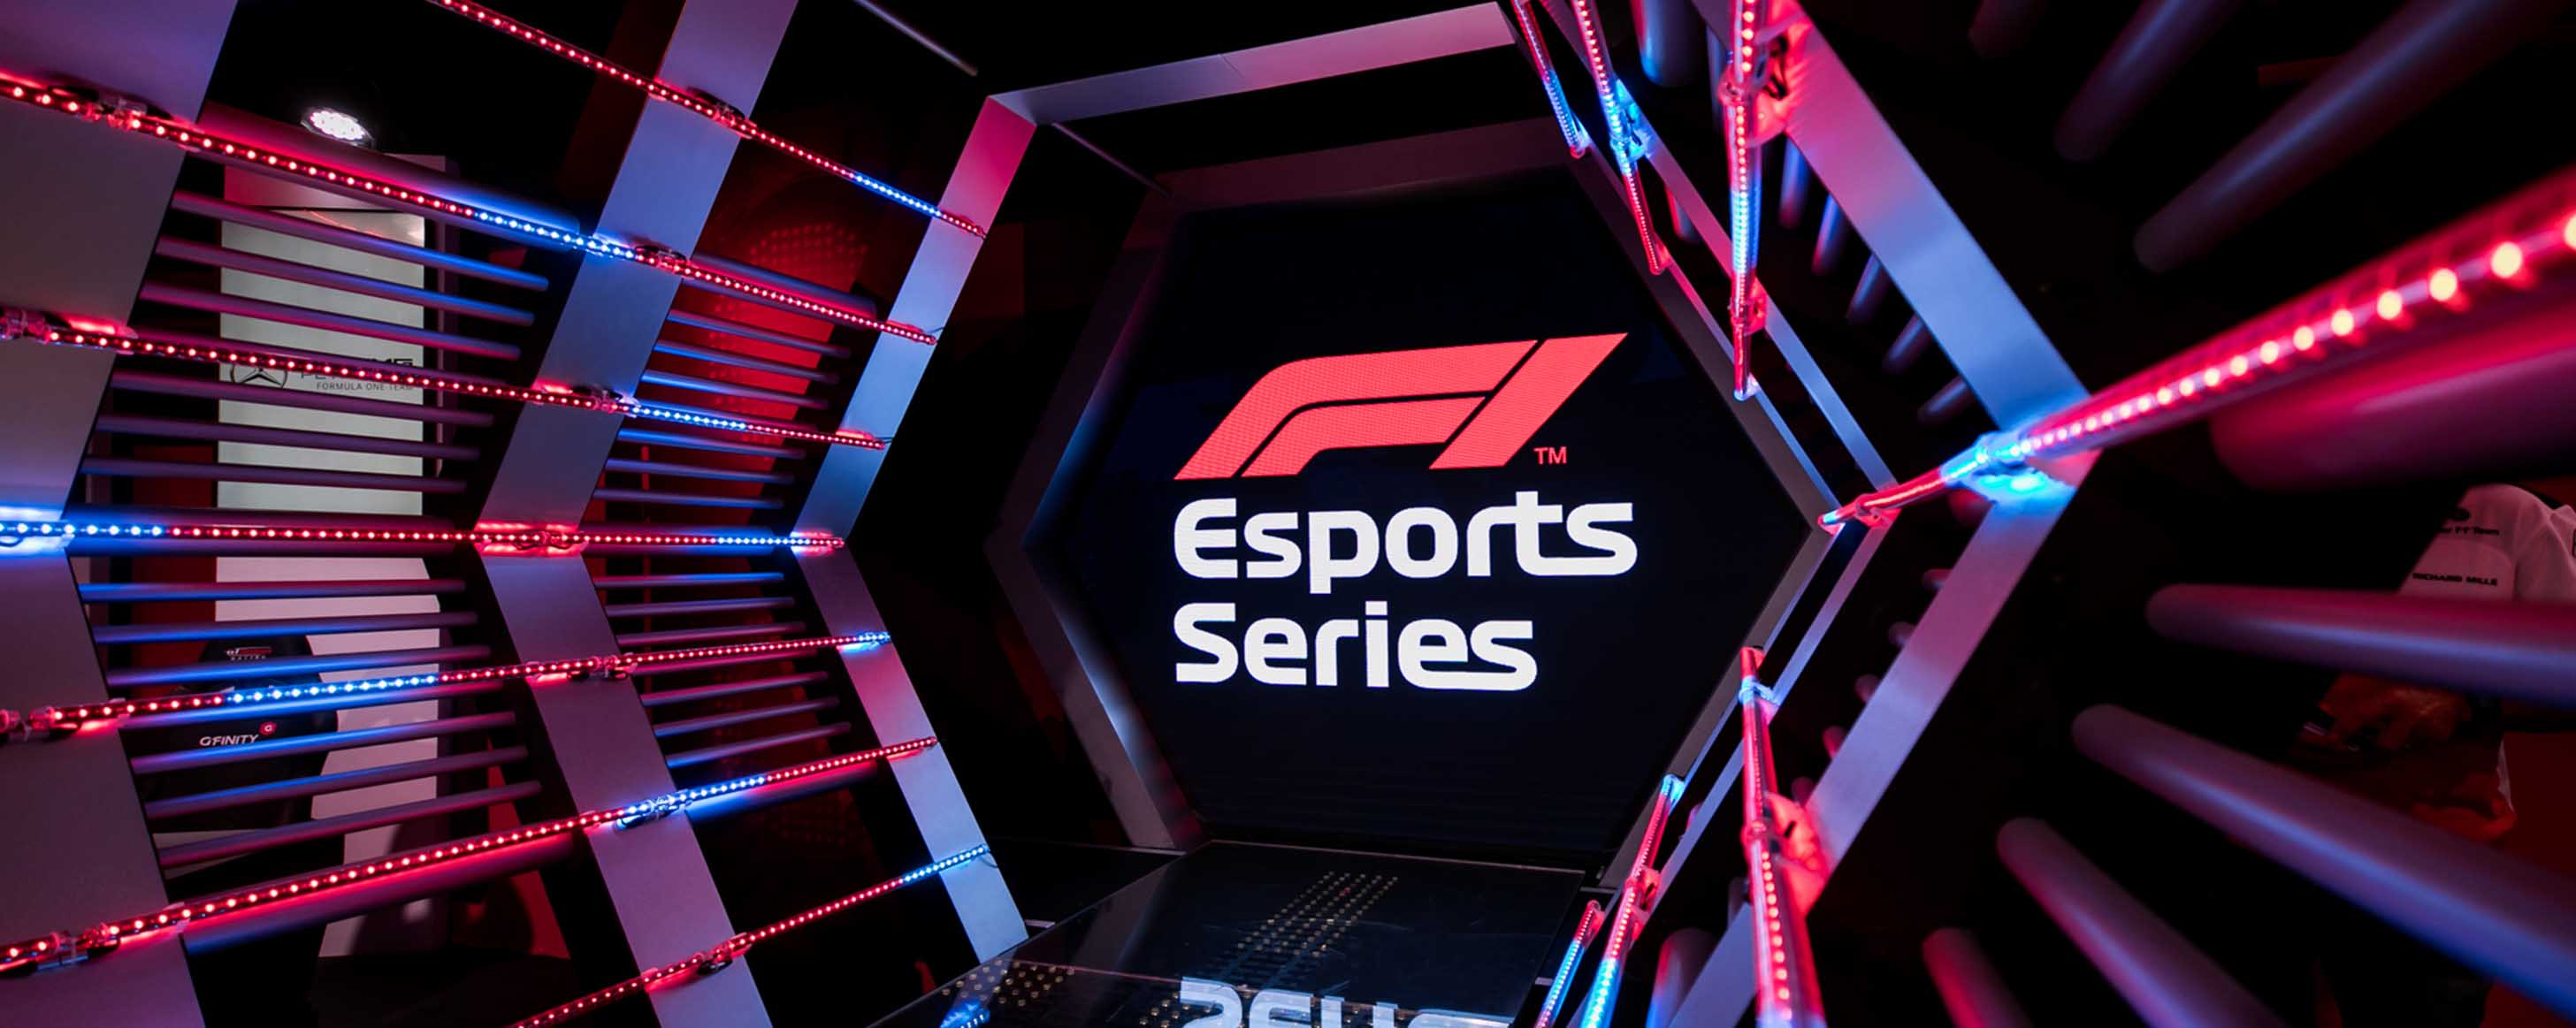 Get Ready For The 2018 F1 Esports Pro Series - F1Esports News